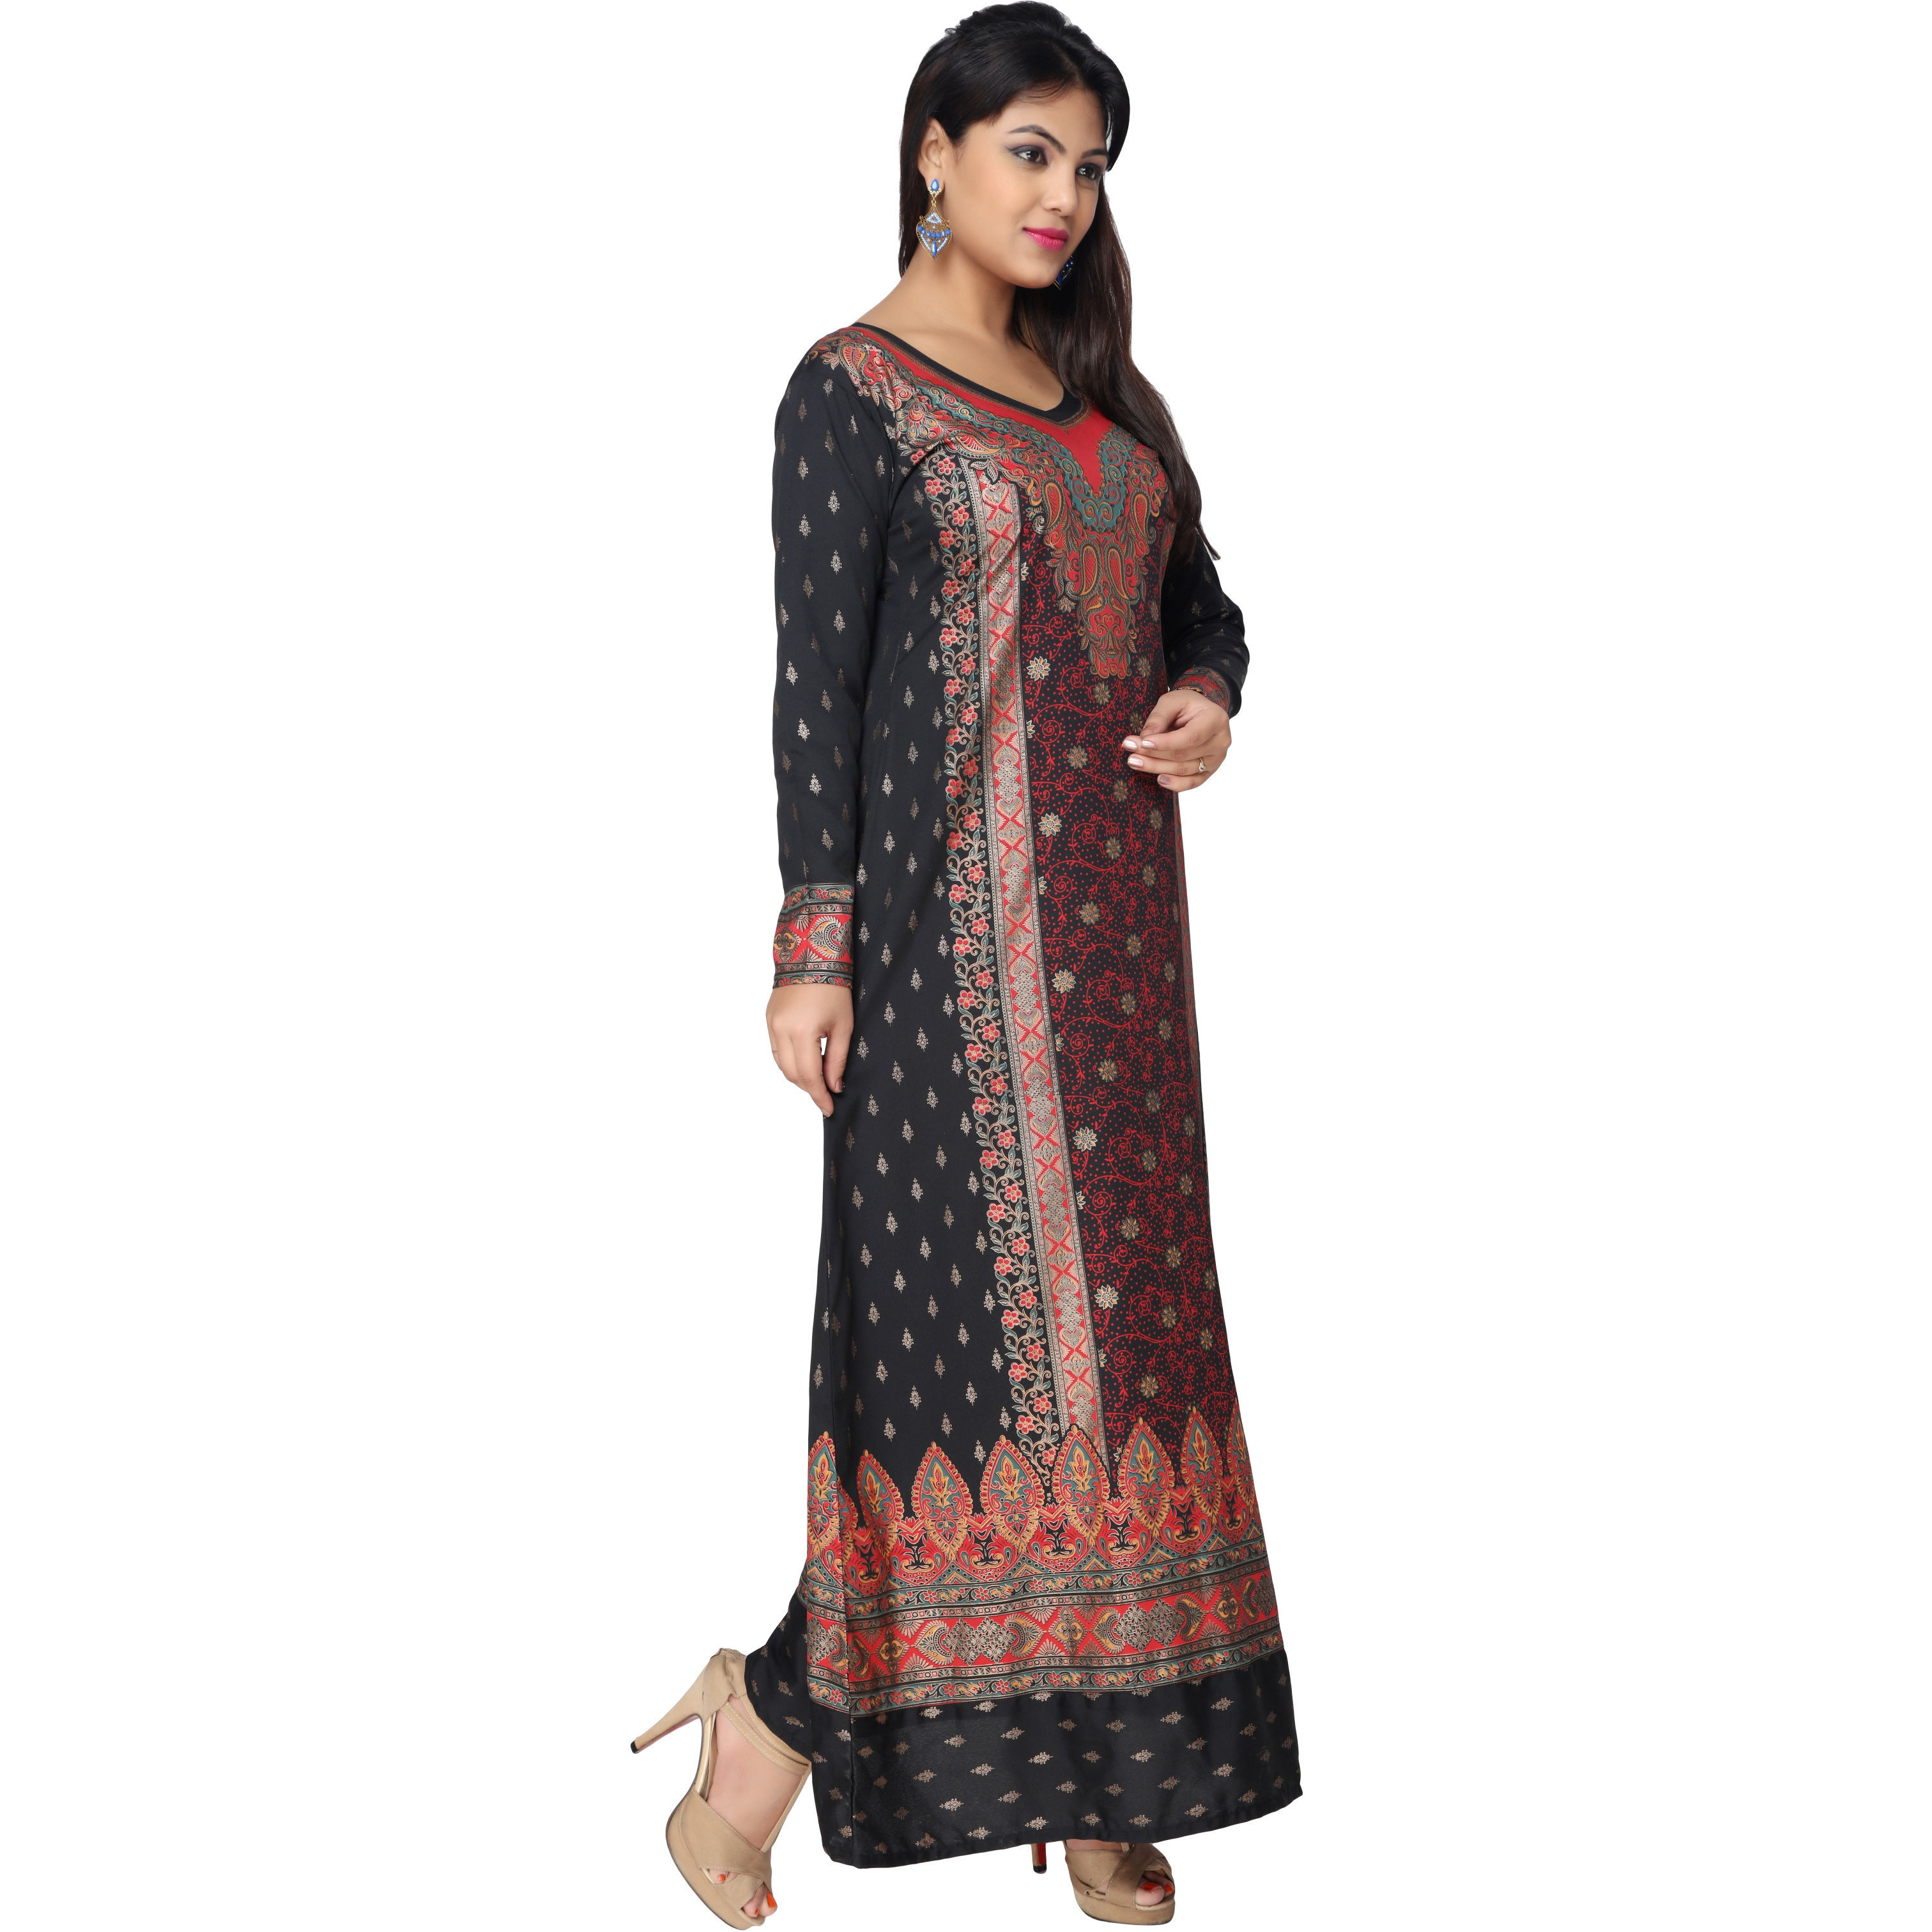 TrendyFashionMall Gold Print Kaftans Maxi Dresses with design in Front and Back (Color:TFMKFT01031-BLACK-RED, Size:38 - SMALL)